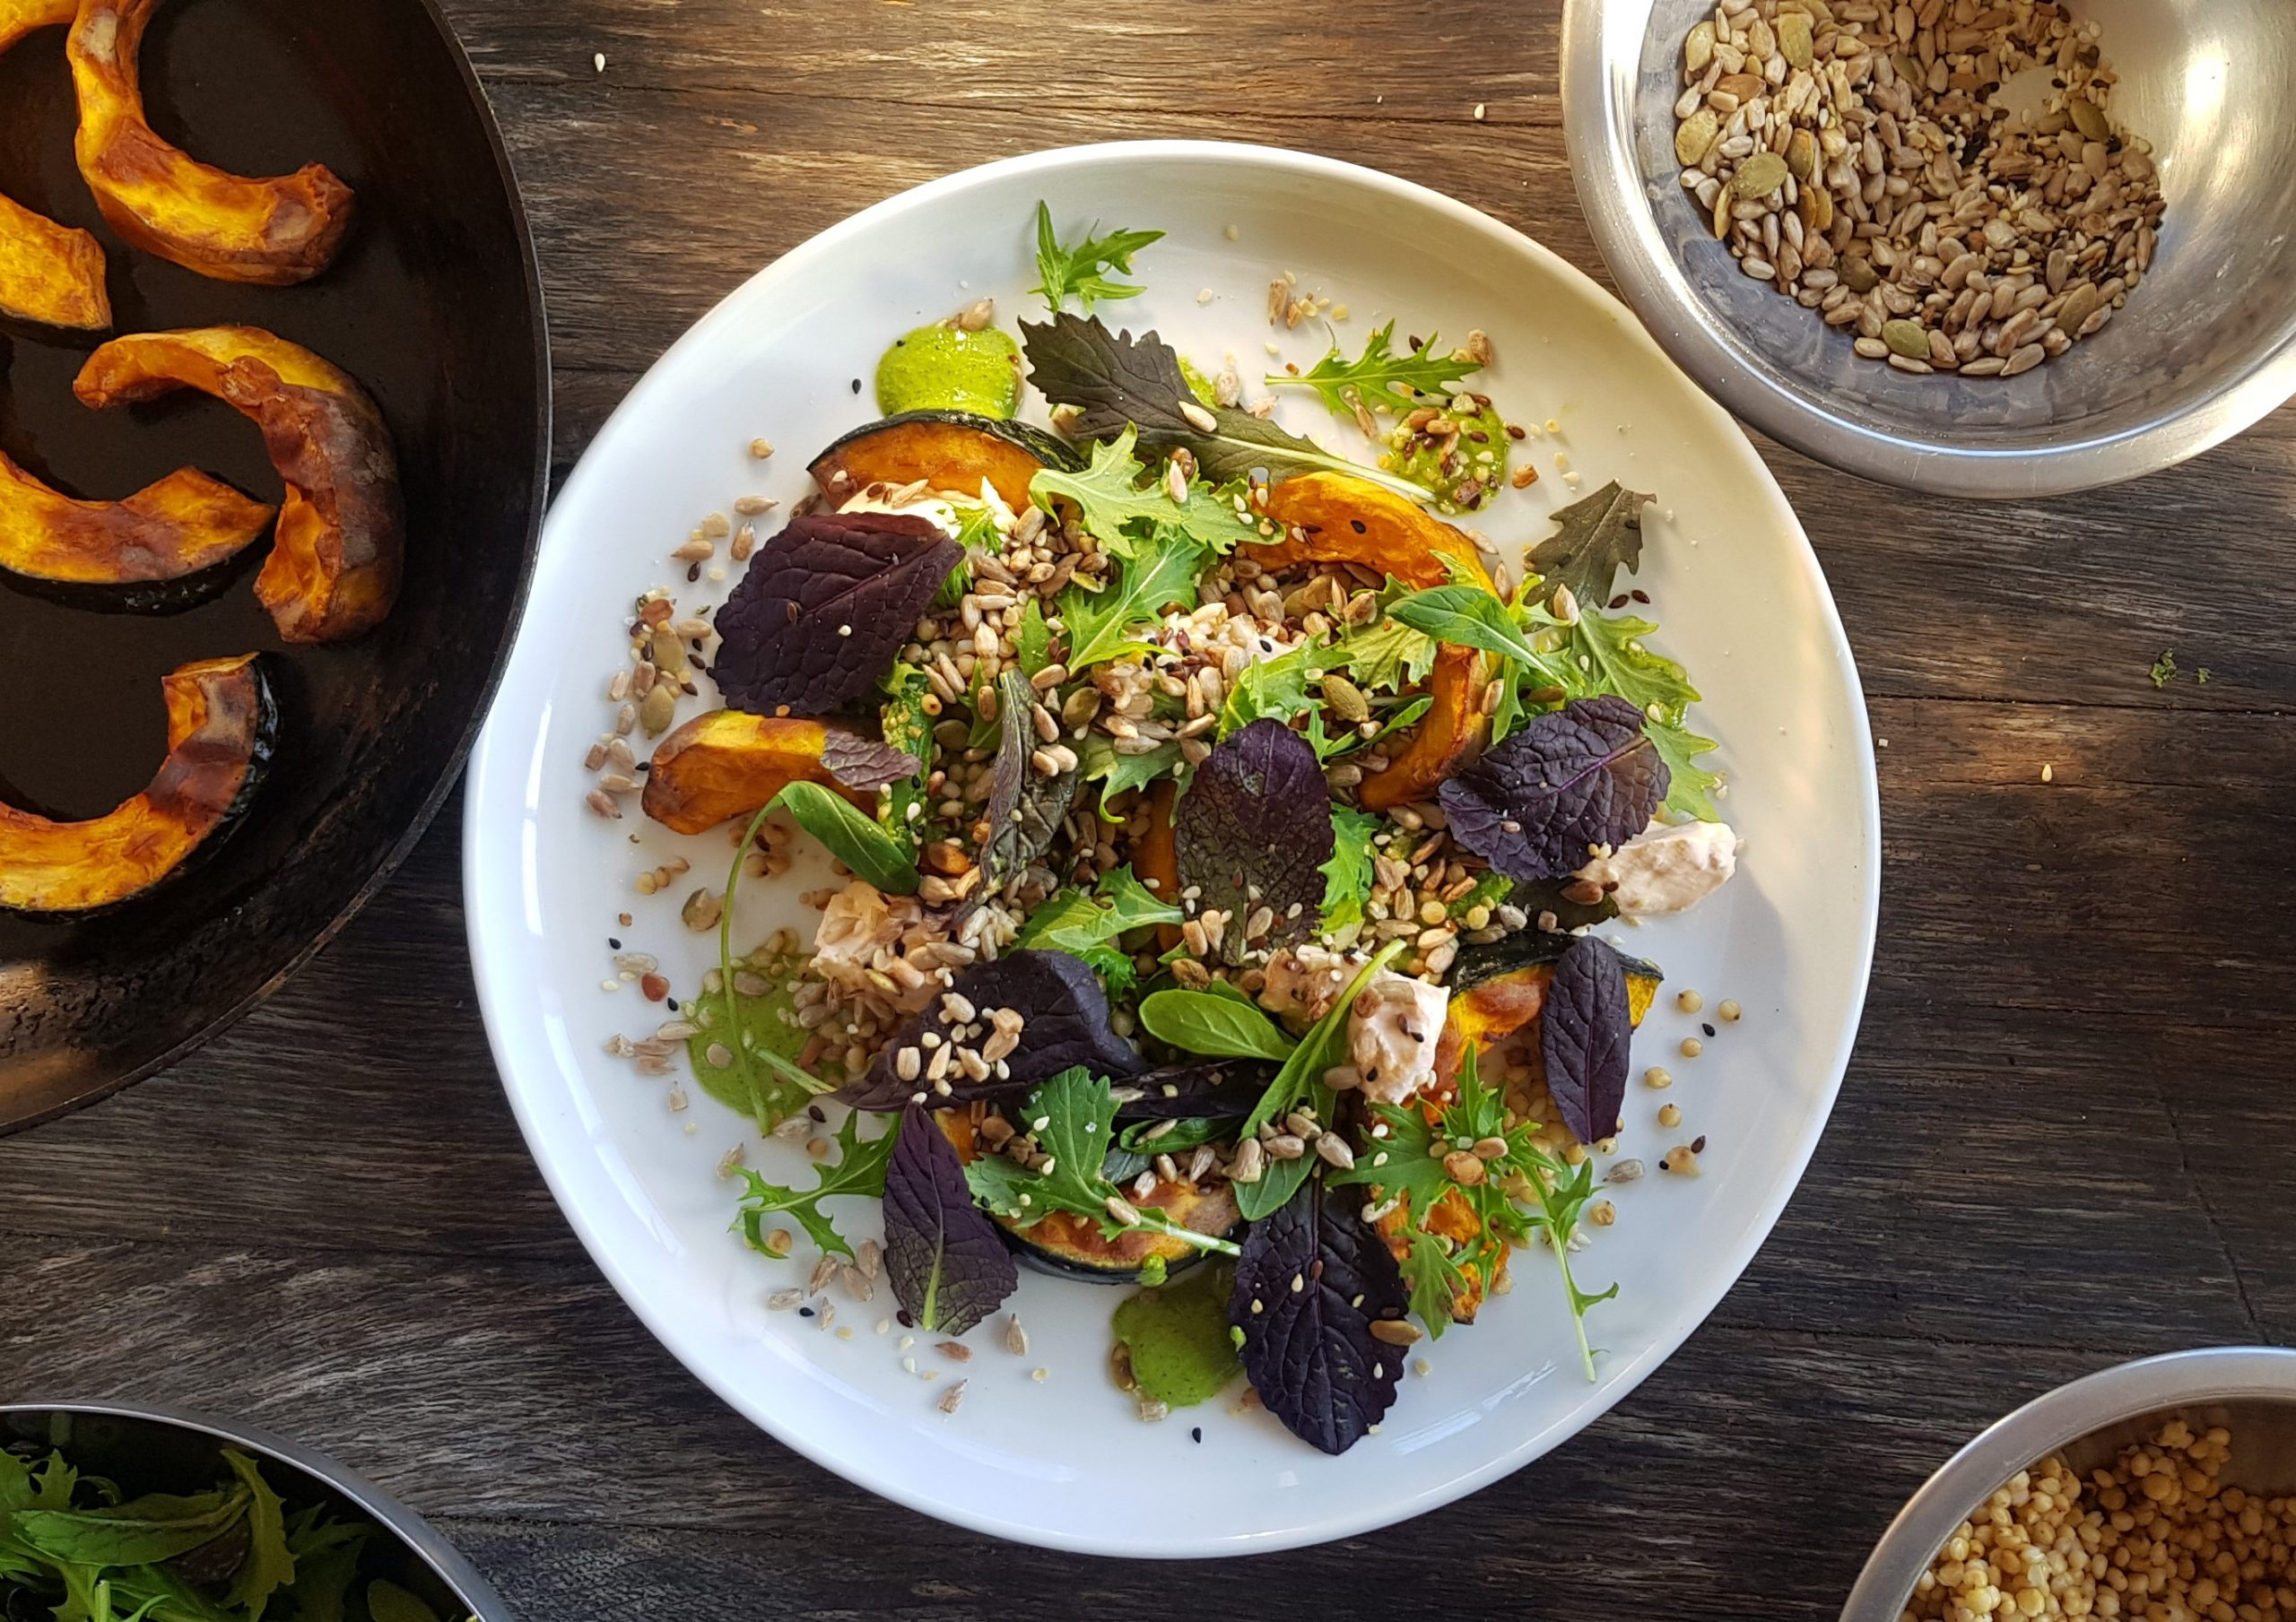 Roast buttercup salad with chili yoghurt, coriander puree, green beans and quinoa